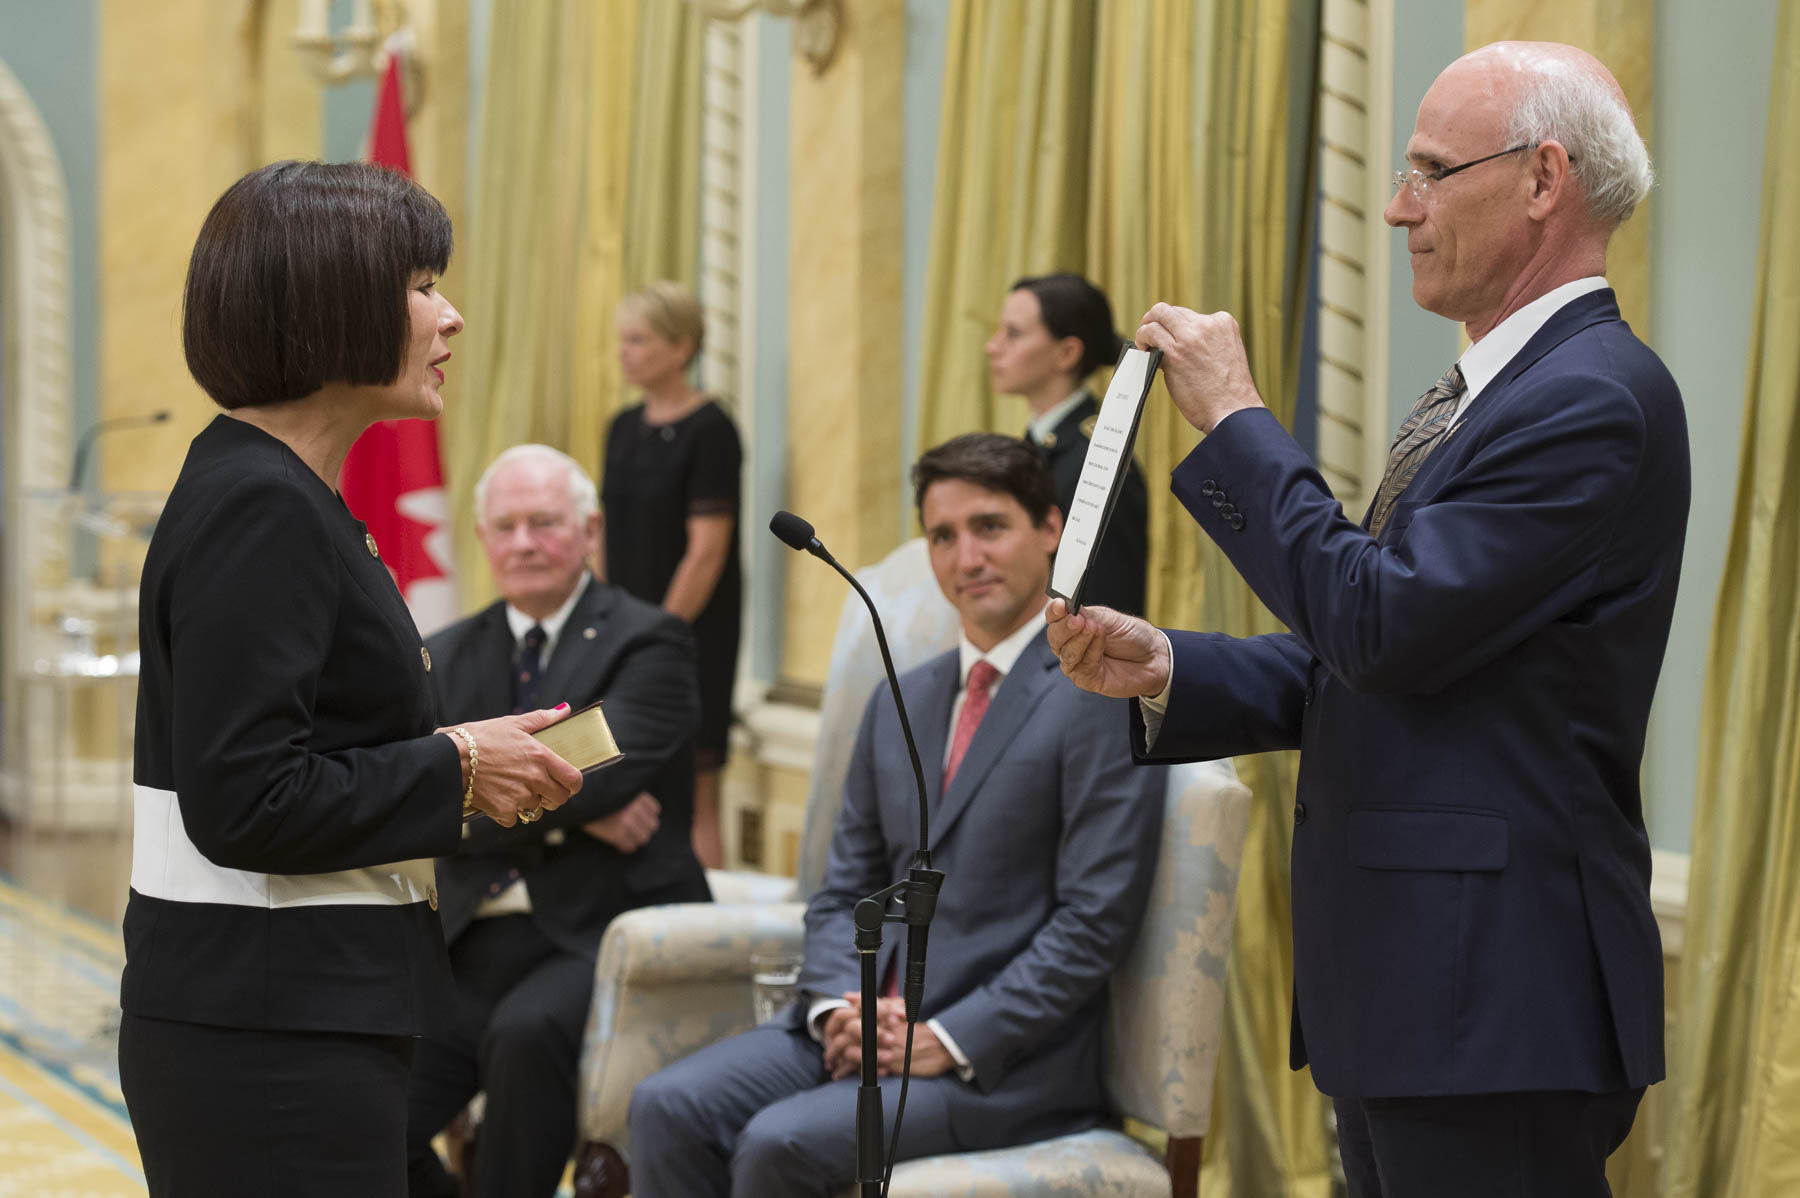 Ginette Petitpas Taylor, former Parliamentary Secretary to the Minister of Finance, became Minister of Health.